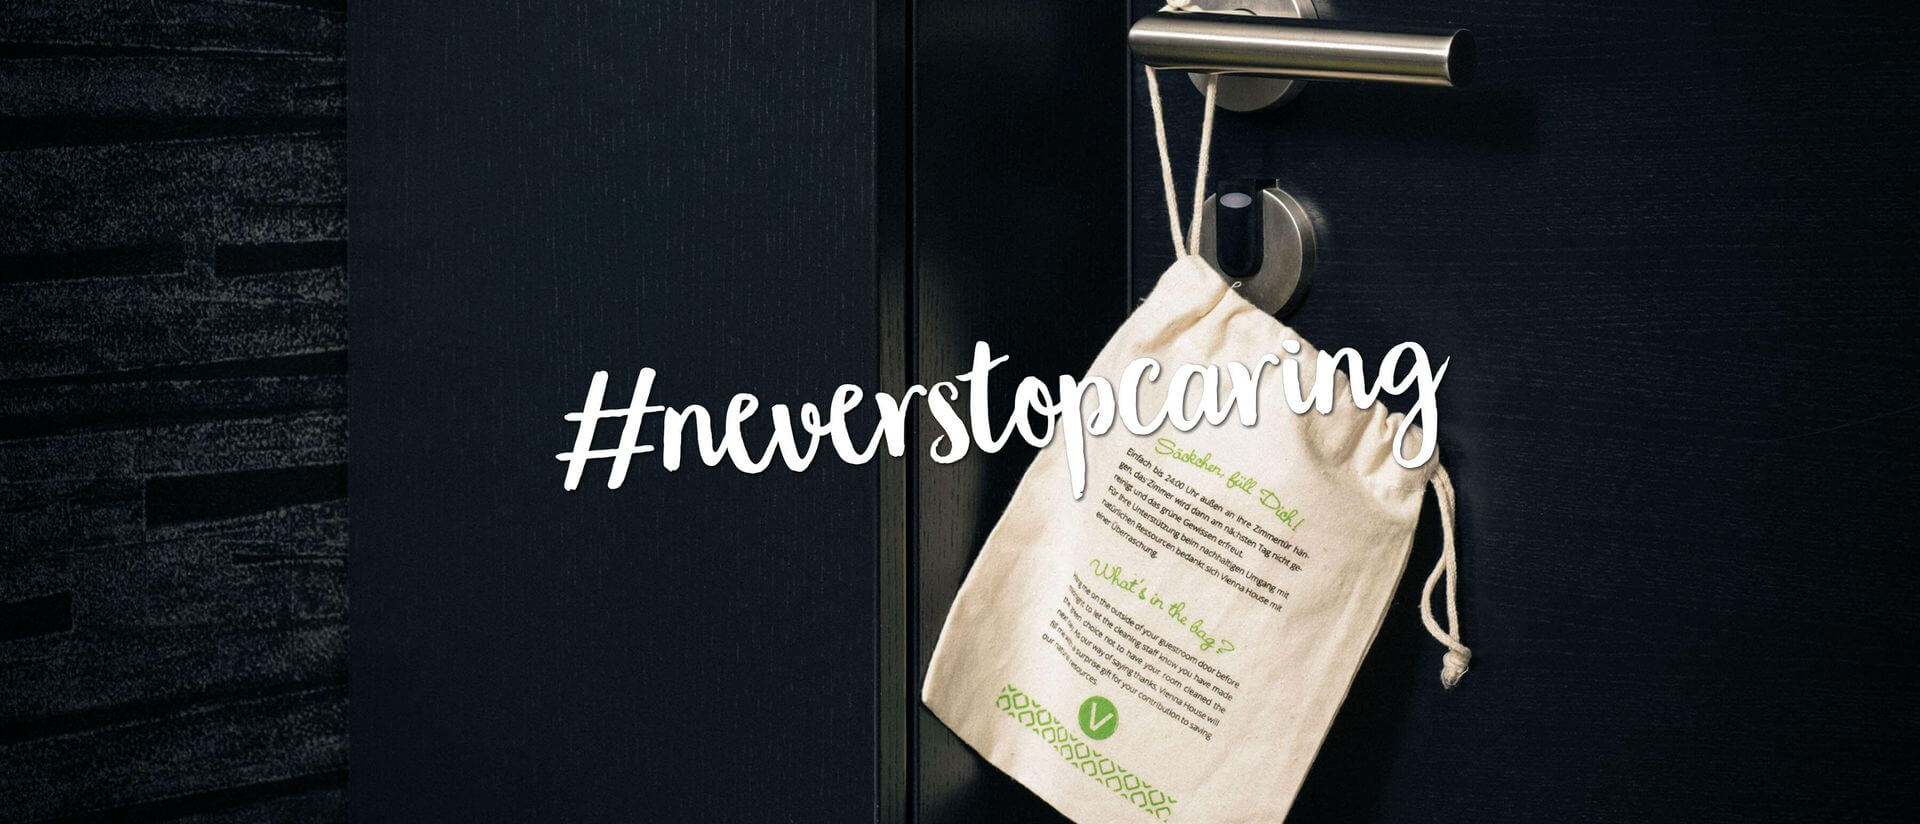 sustainability bag on the doorknob of a room